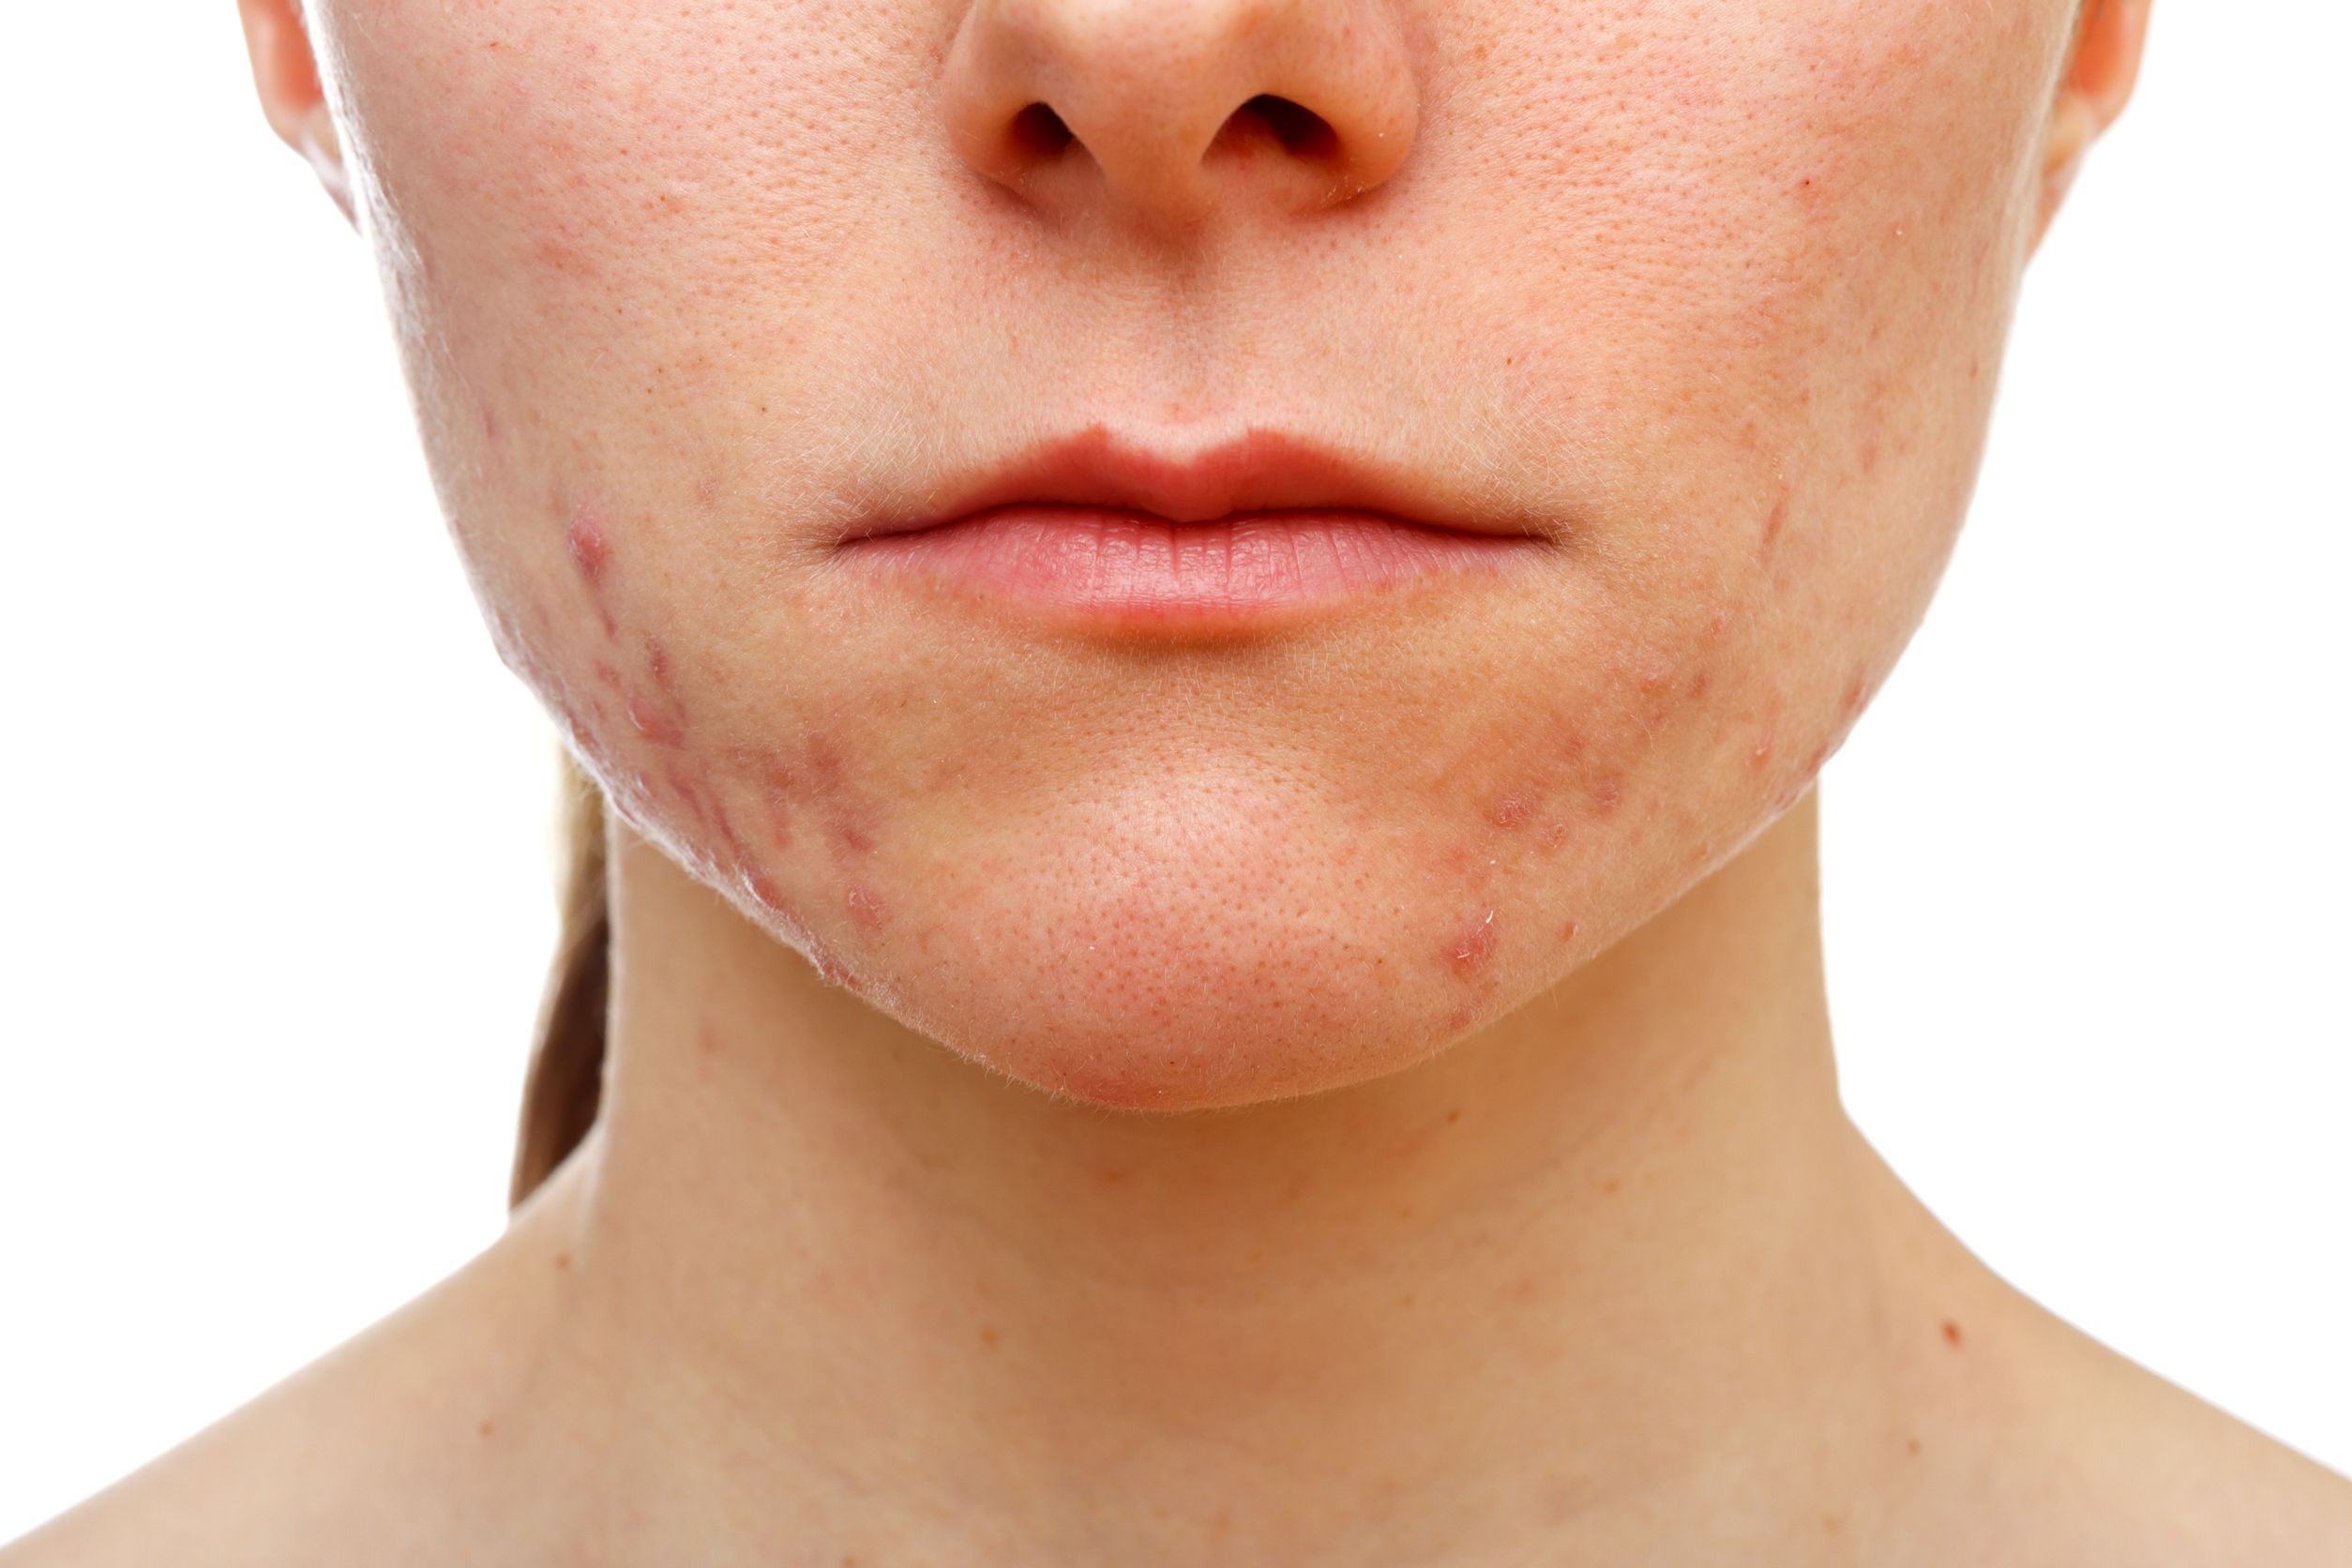 women with acne scars